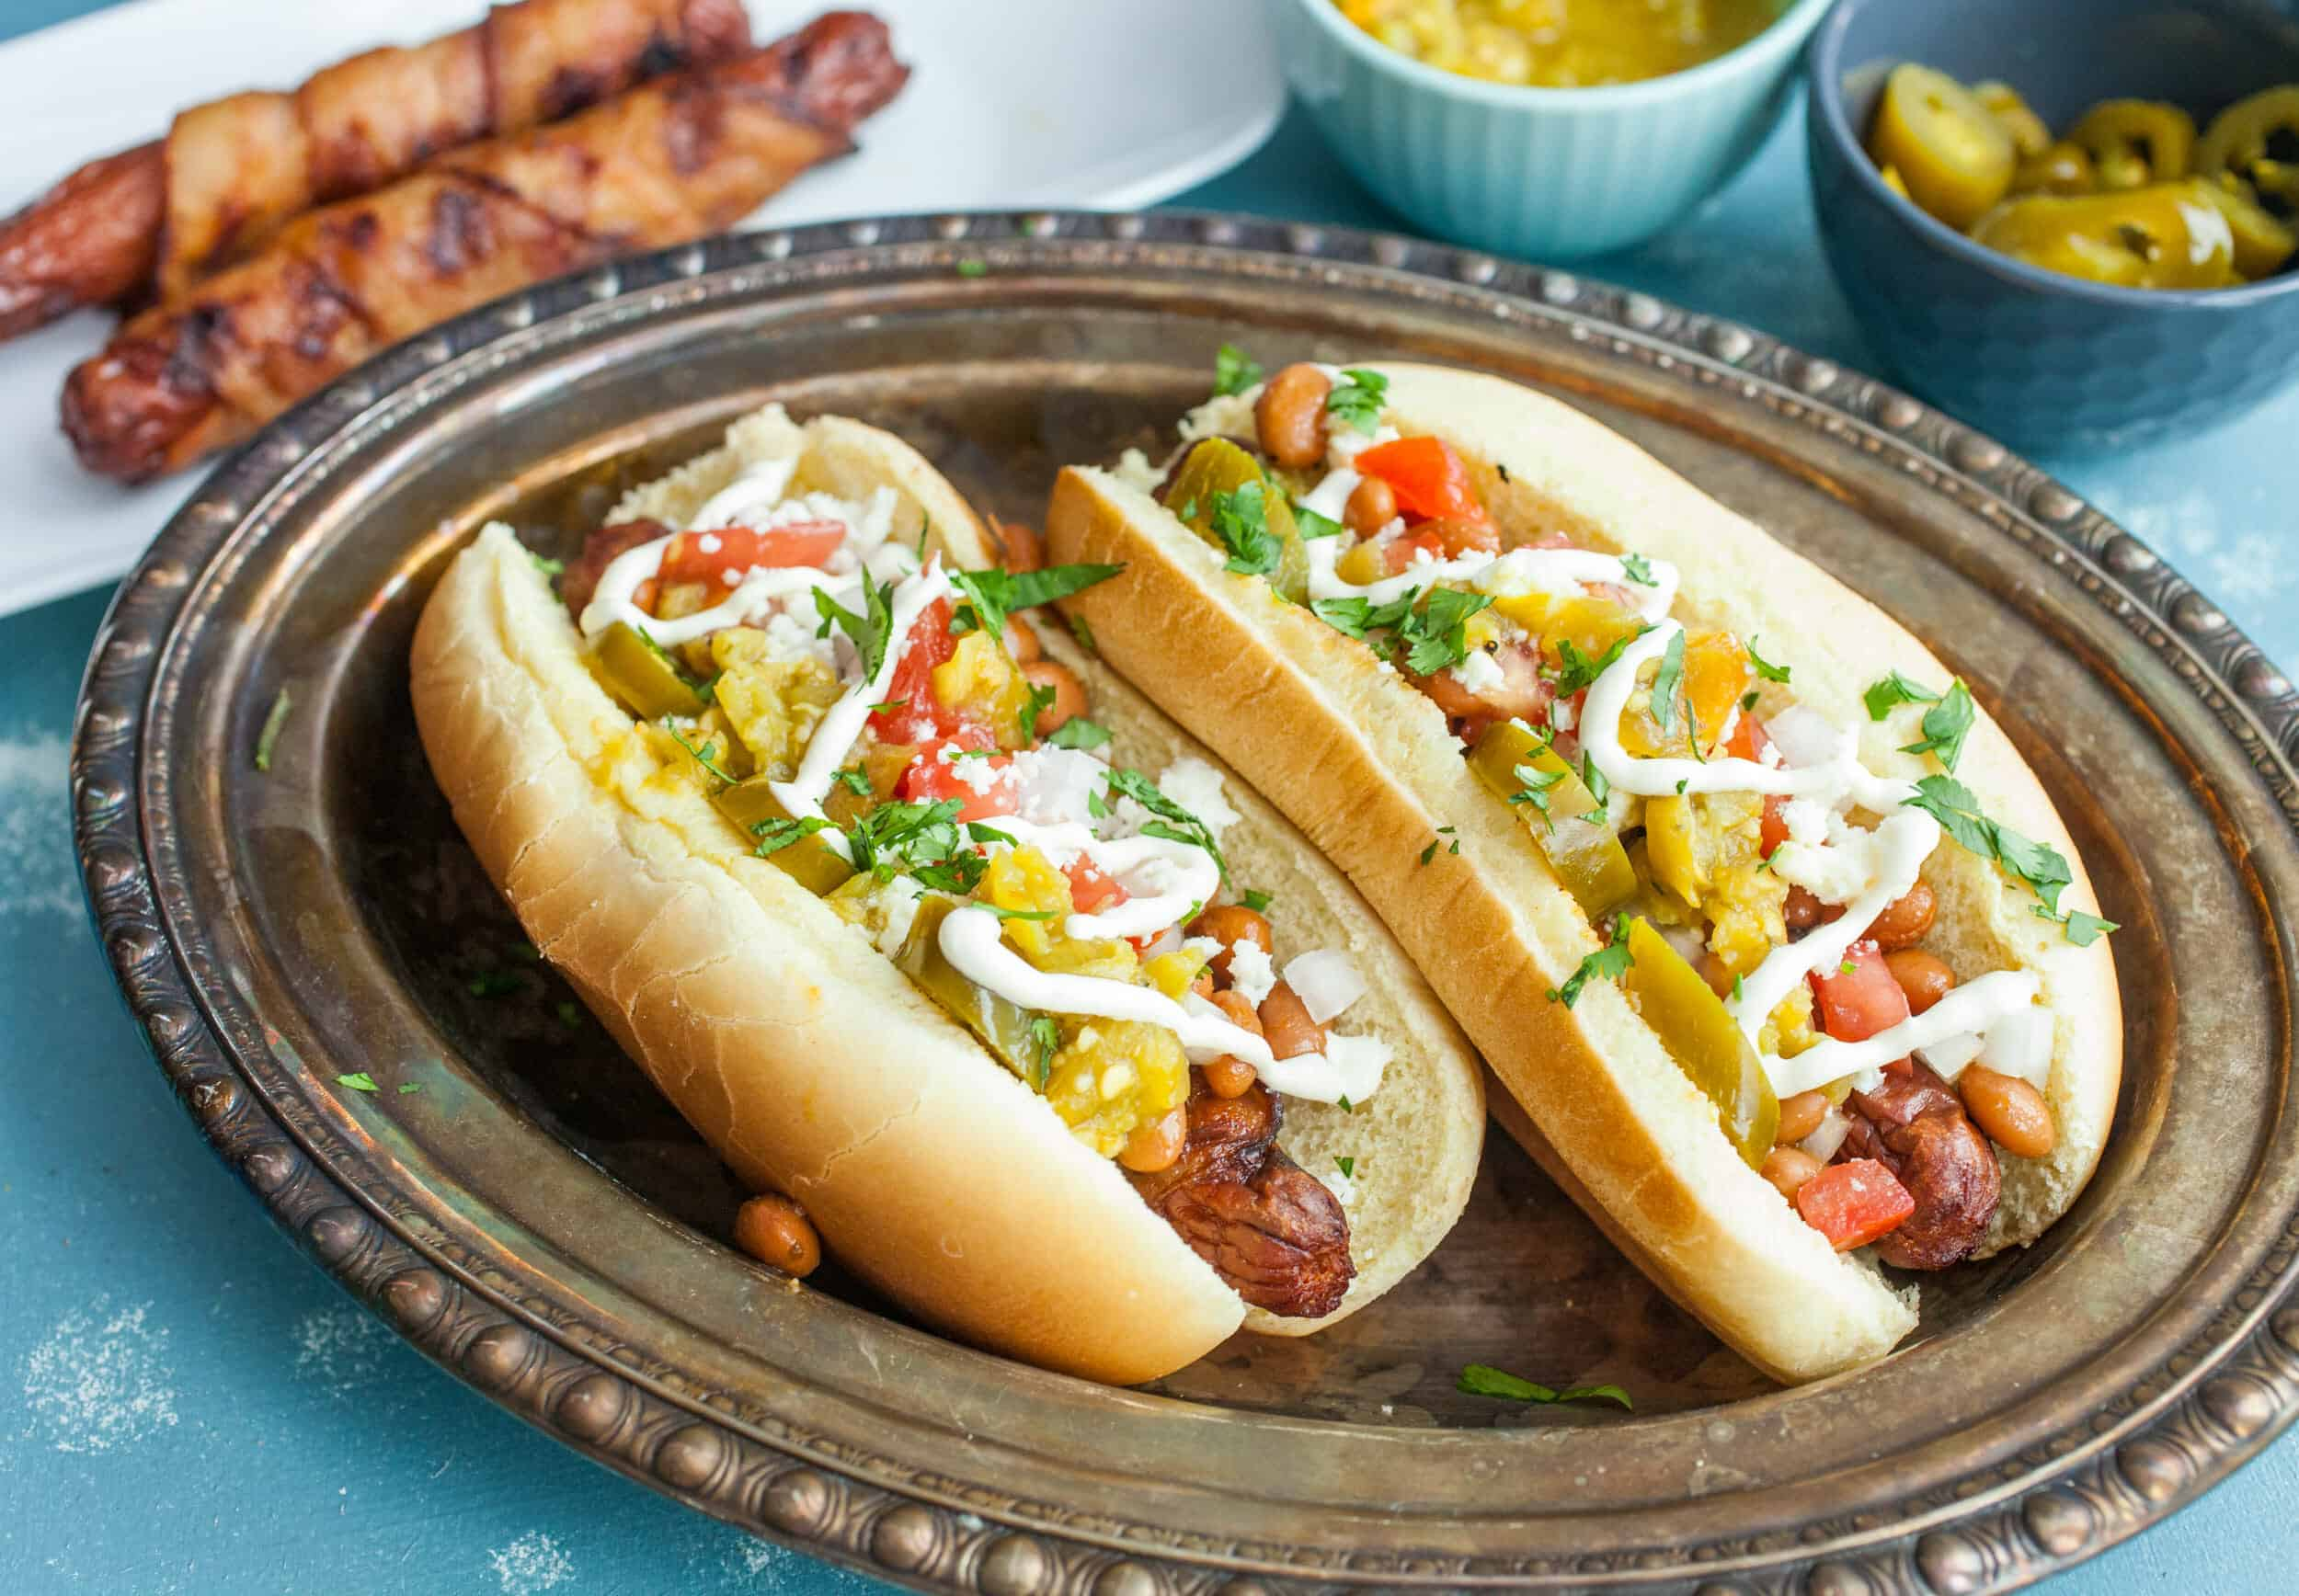 Sonoran Hot Dogs: Bacon wrapped grilled hot dogs topped with ALL the toppings you could ever want. These are the perfect jazzed-up hot dog for a backyard party! Inspired by the popular Tucson version. | macheesmo.com